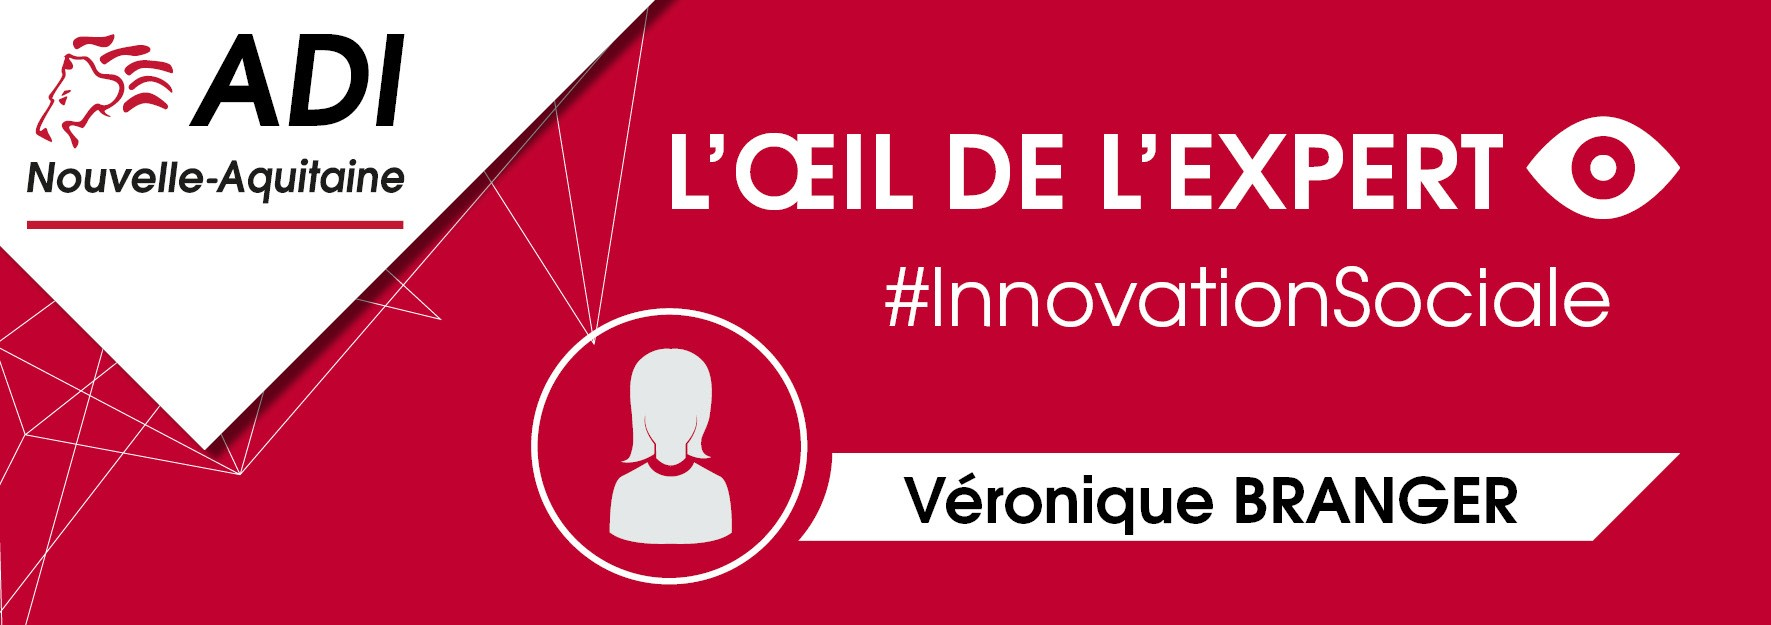 L'œil de l'expert #InnovationSociale : Véronique Branger